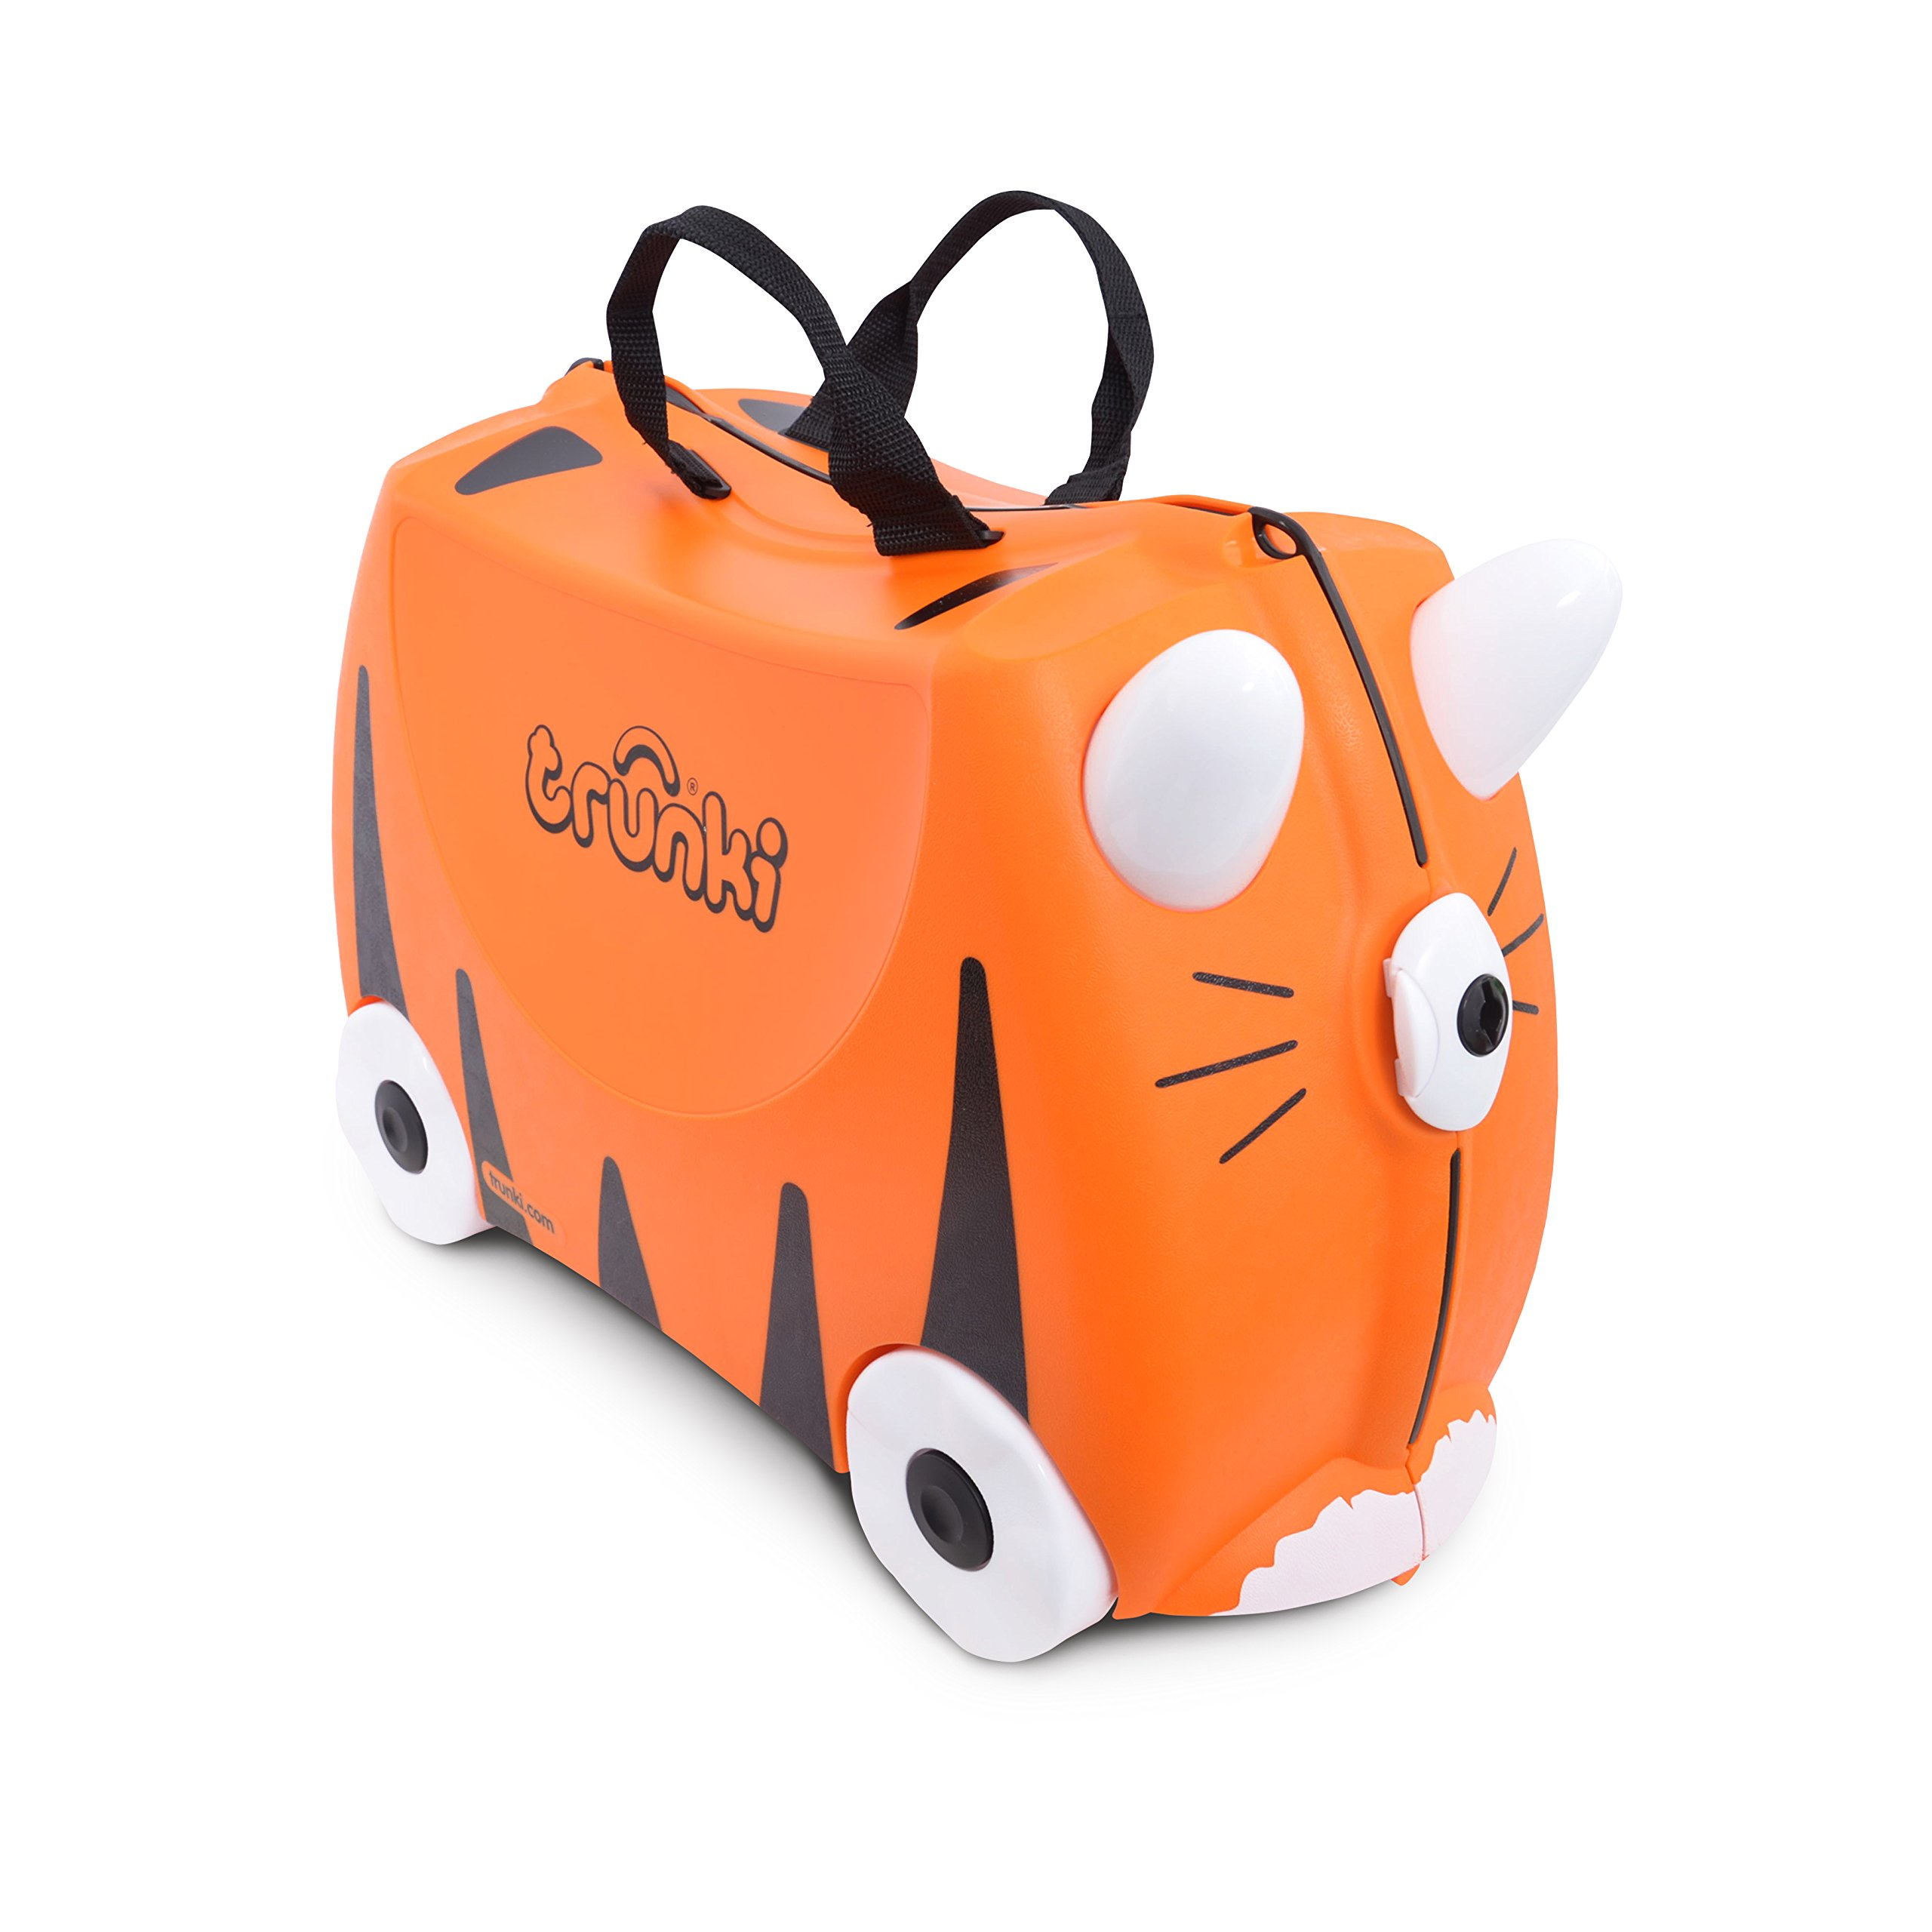 Trunki à monter valise product image